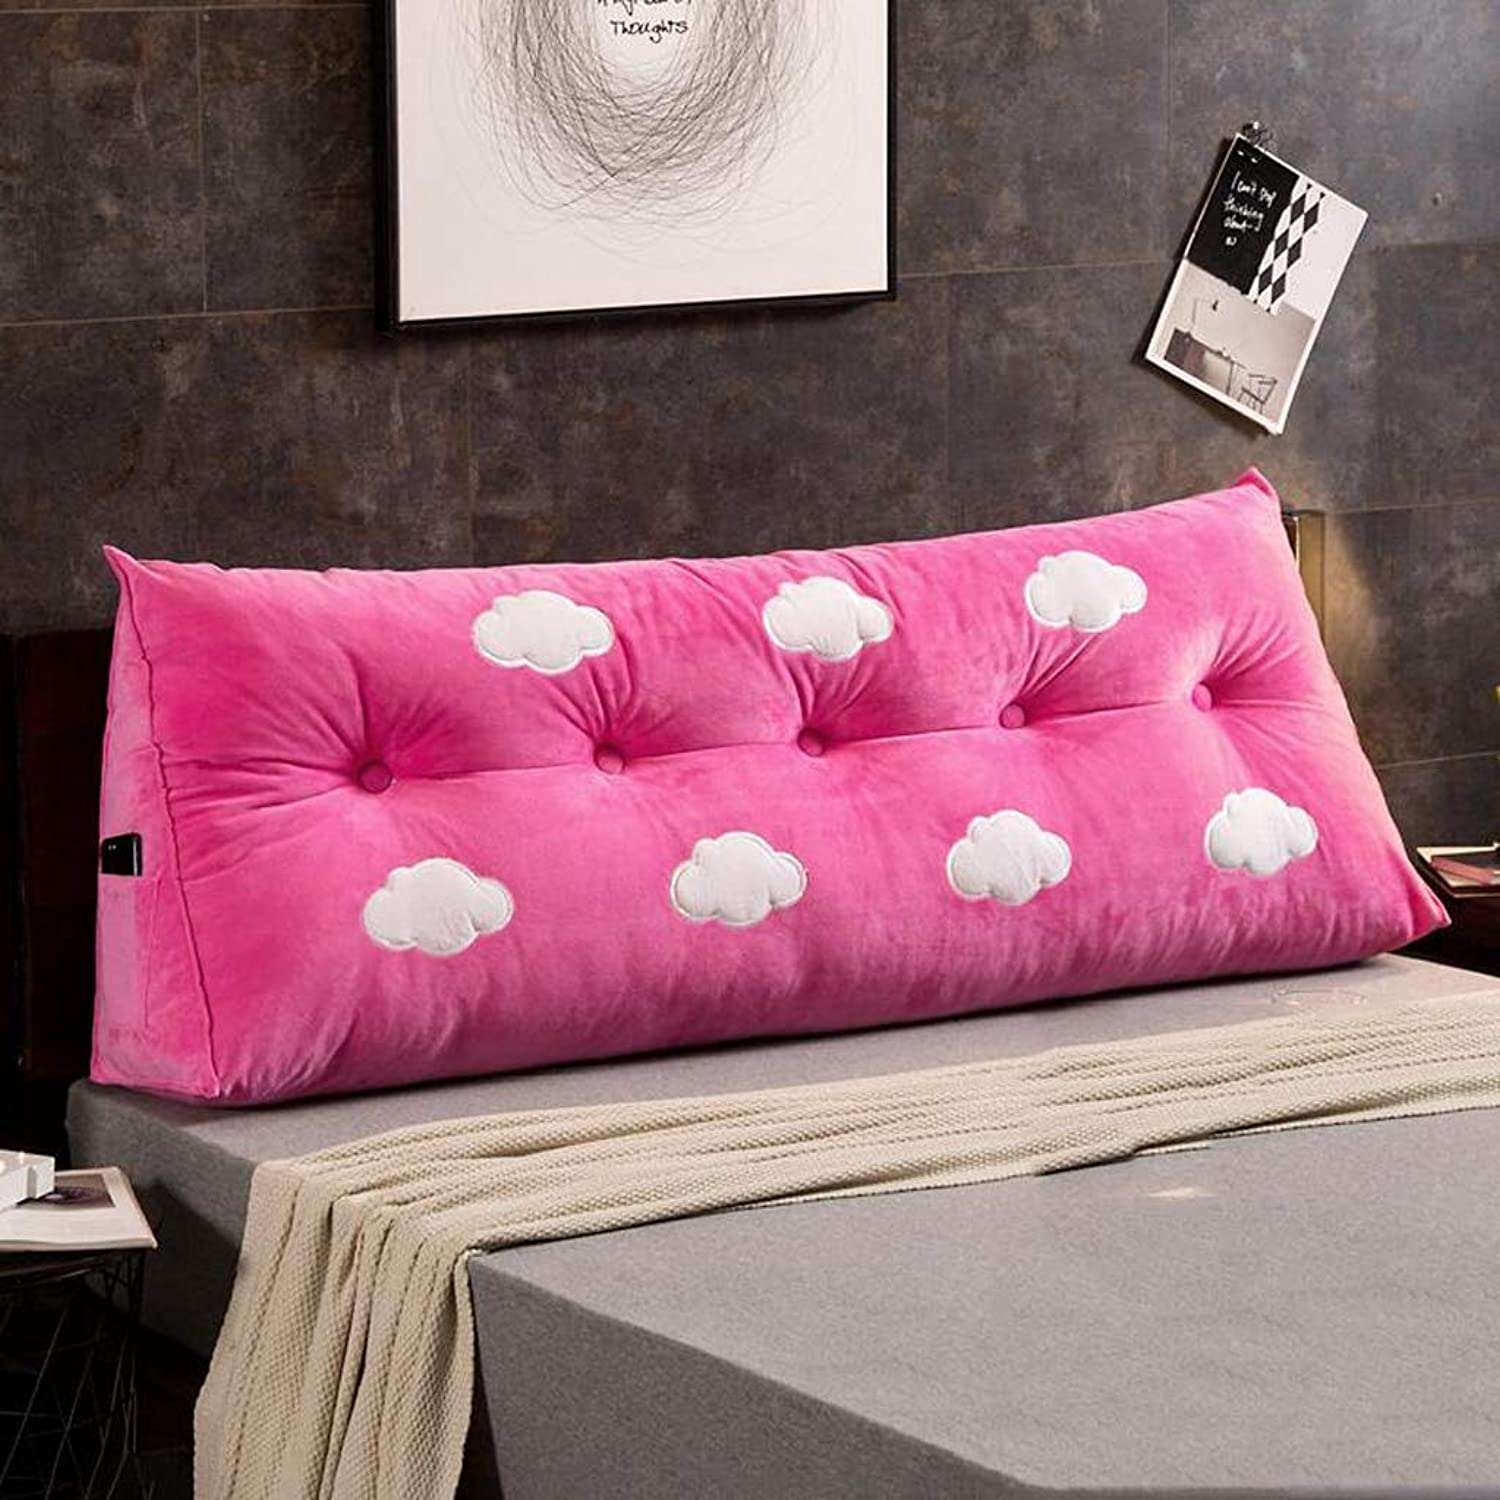 RFJJAL Double Headboard Cushion Bedside Back Cushion Pillow Sofa Soft Bag Bed Cushion (color   E, Size   100x22x50cm)